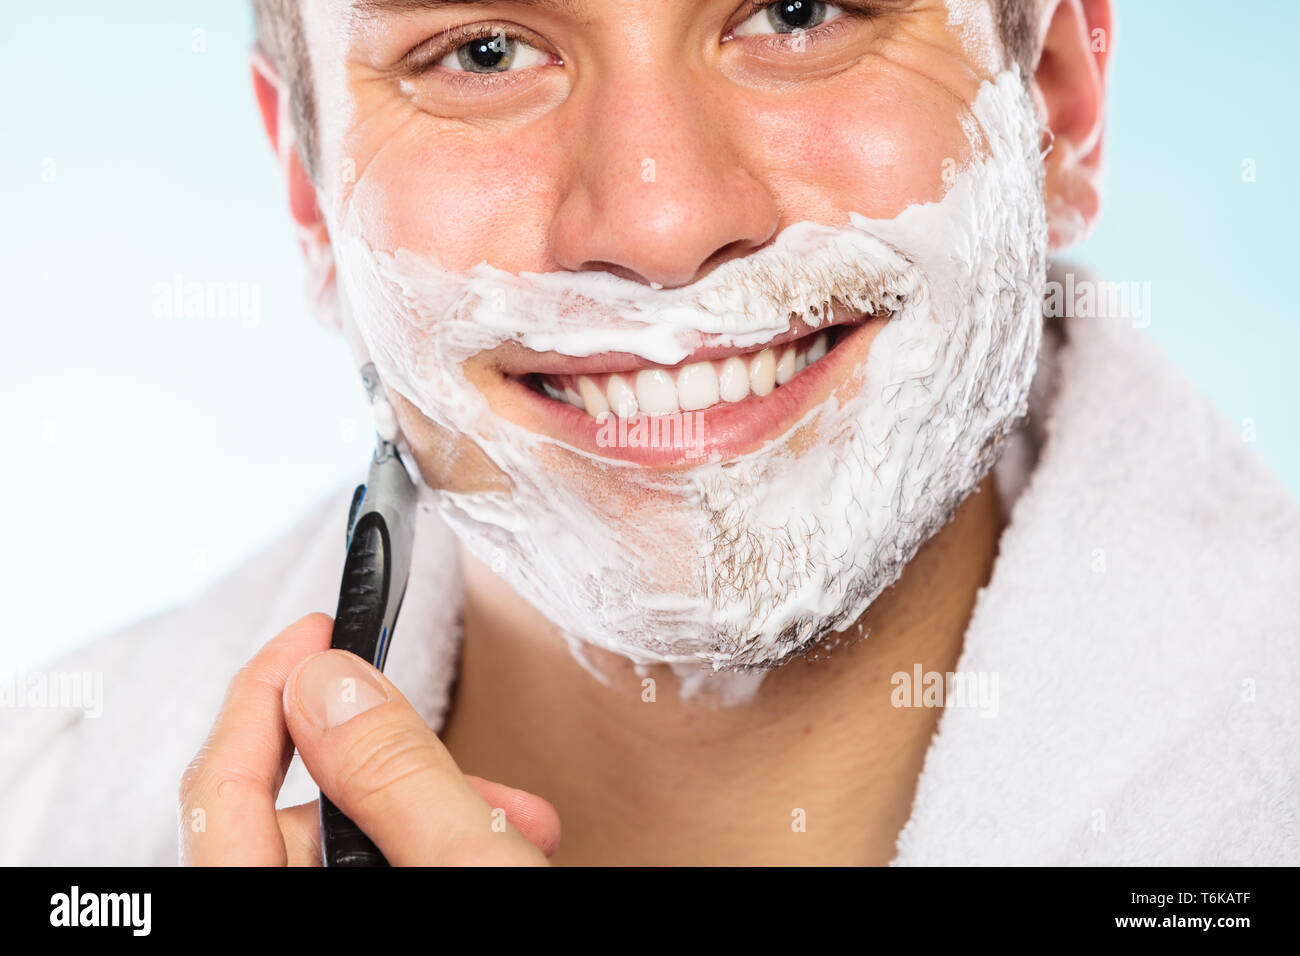 Health beauty and skin care concept. Handsome young bearded man with foam on face shaving with razor on blue background. - Stock Image